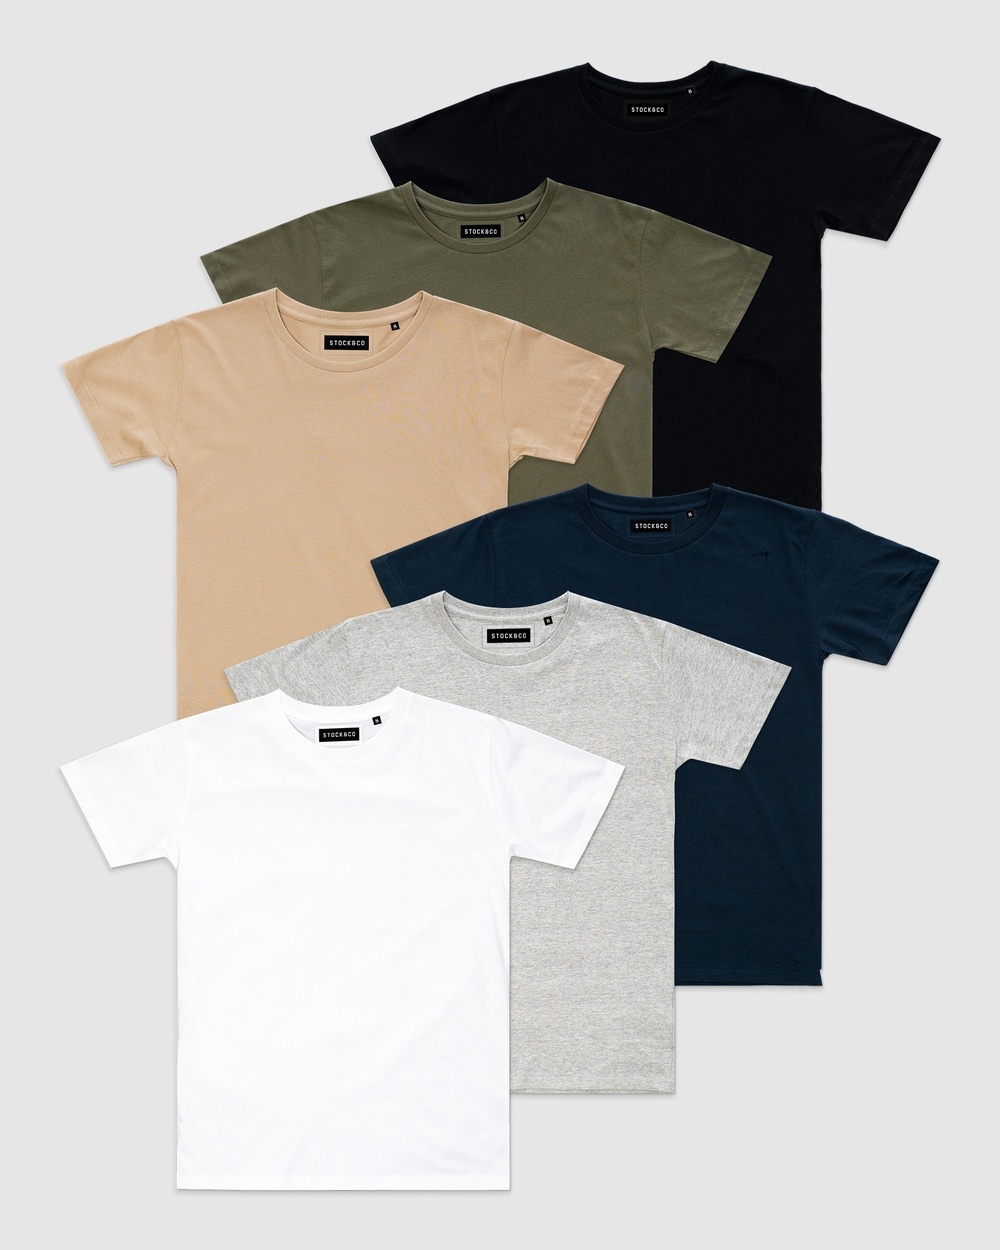 Stock & Co. - 6 Pack Stock Tee   Teens - T-Shirts & Singlets (MULTI) 6-Pack Stock Tee - Teens